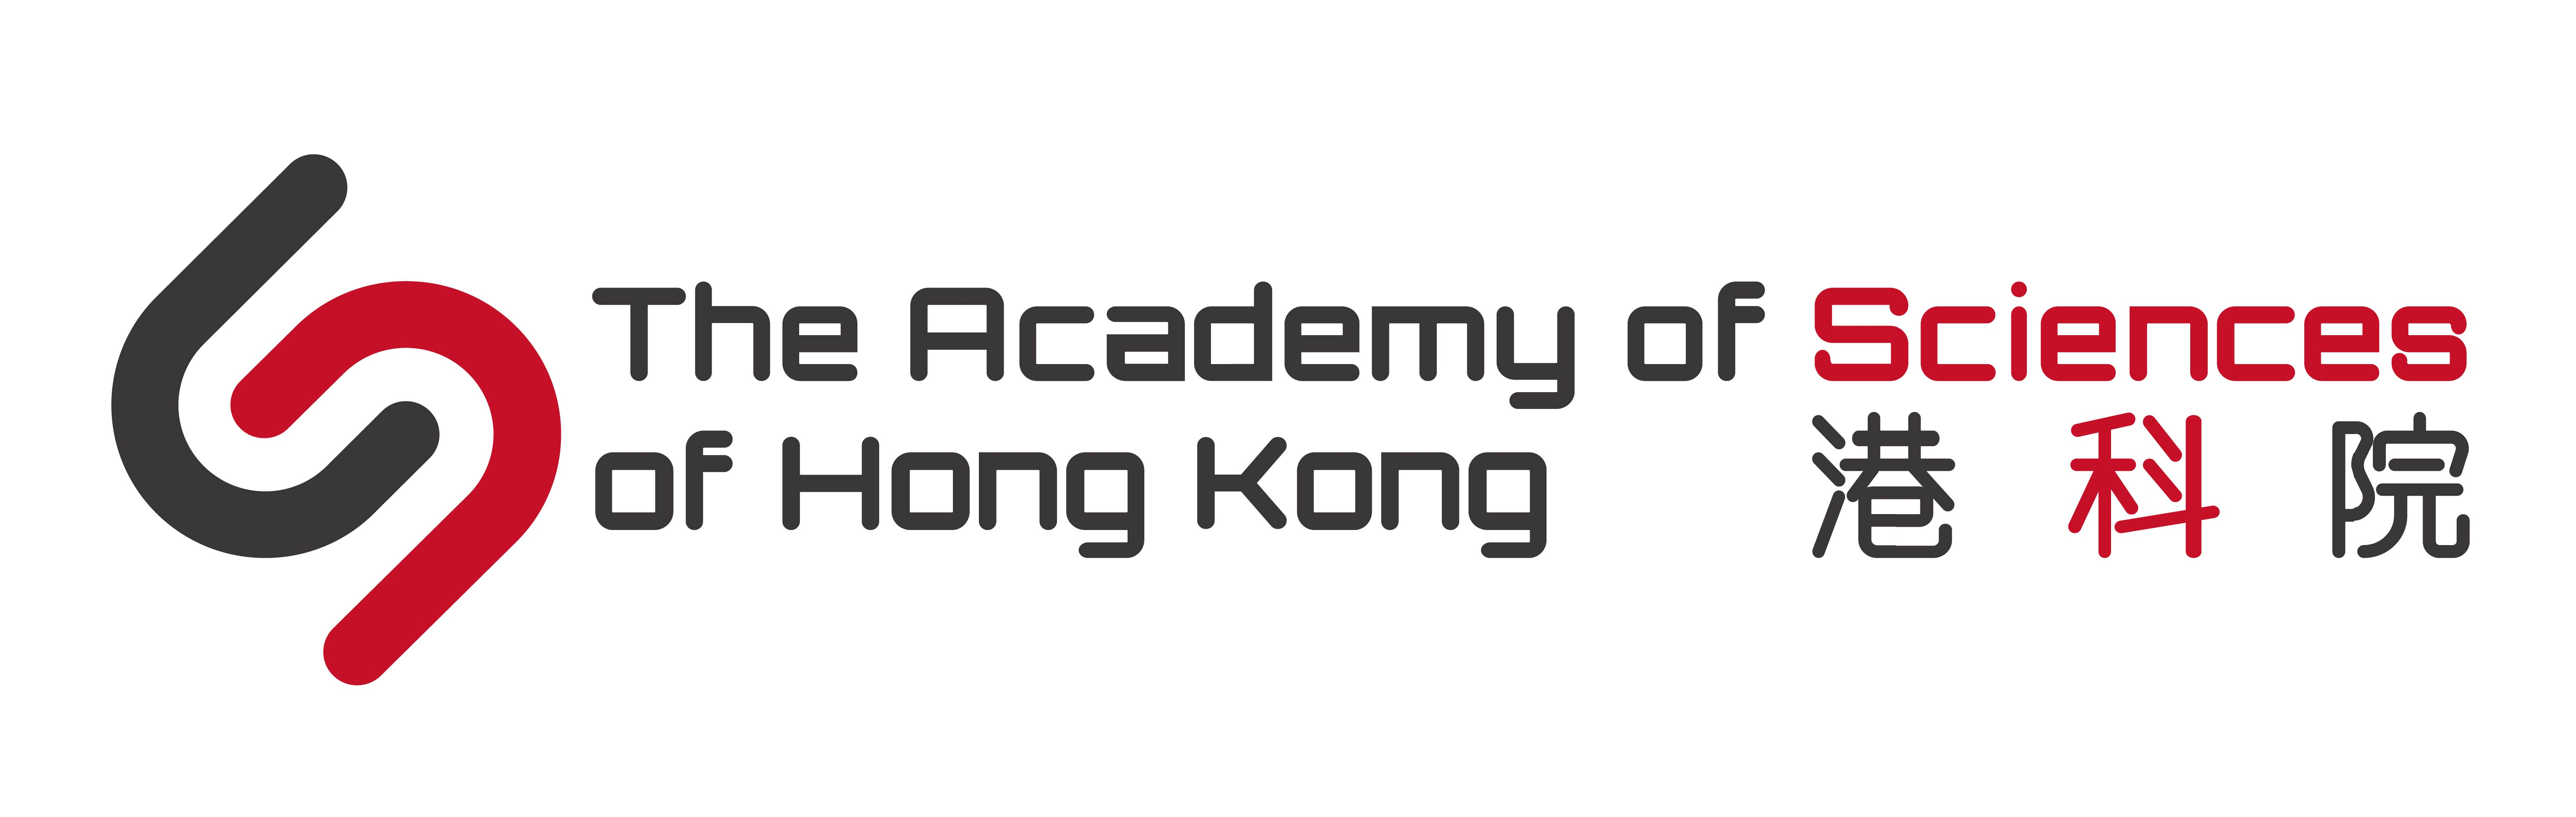 S T Yau High School Science Award (Asia) establishes foothold  In Hong Kong